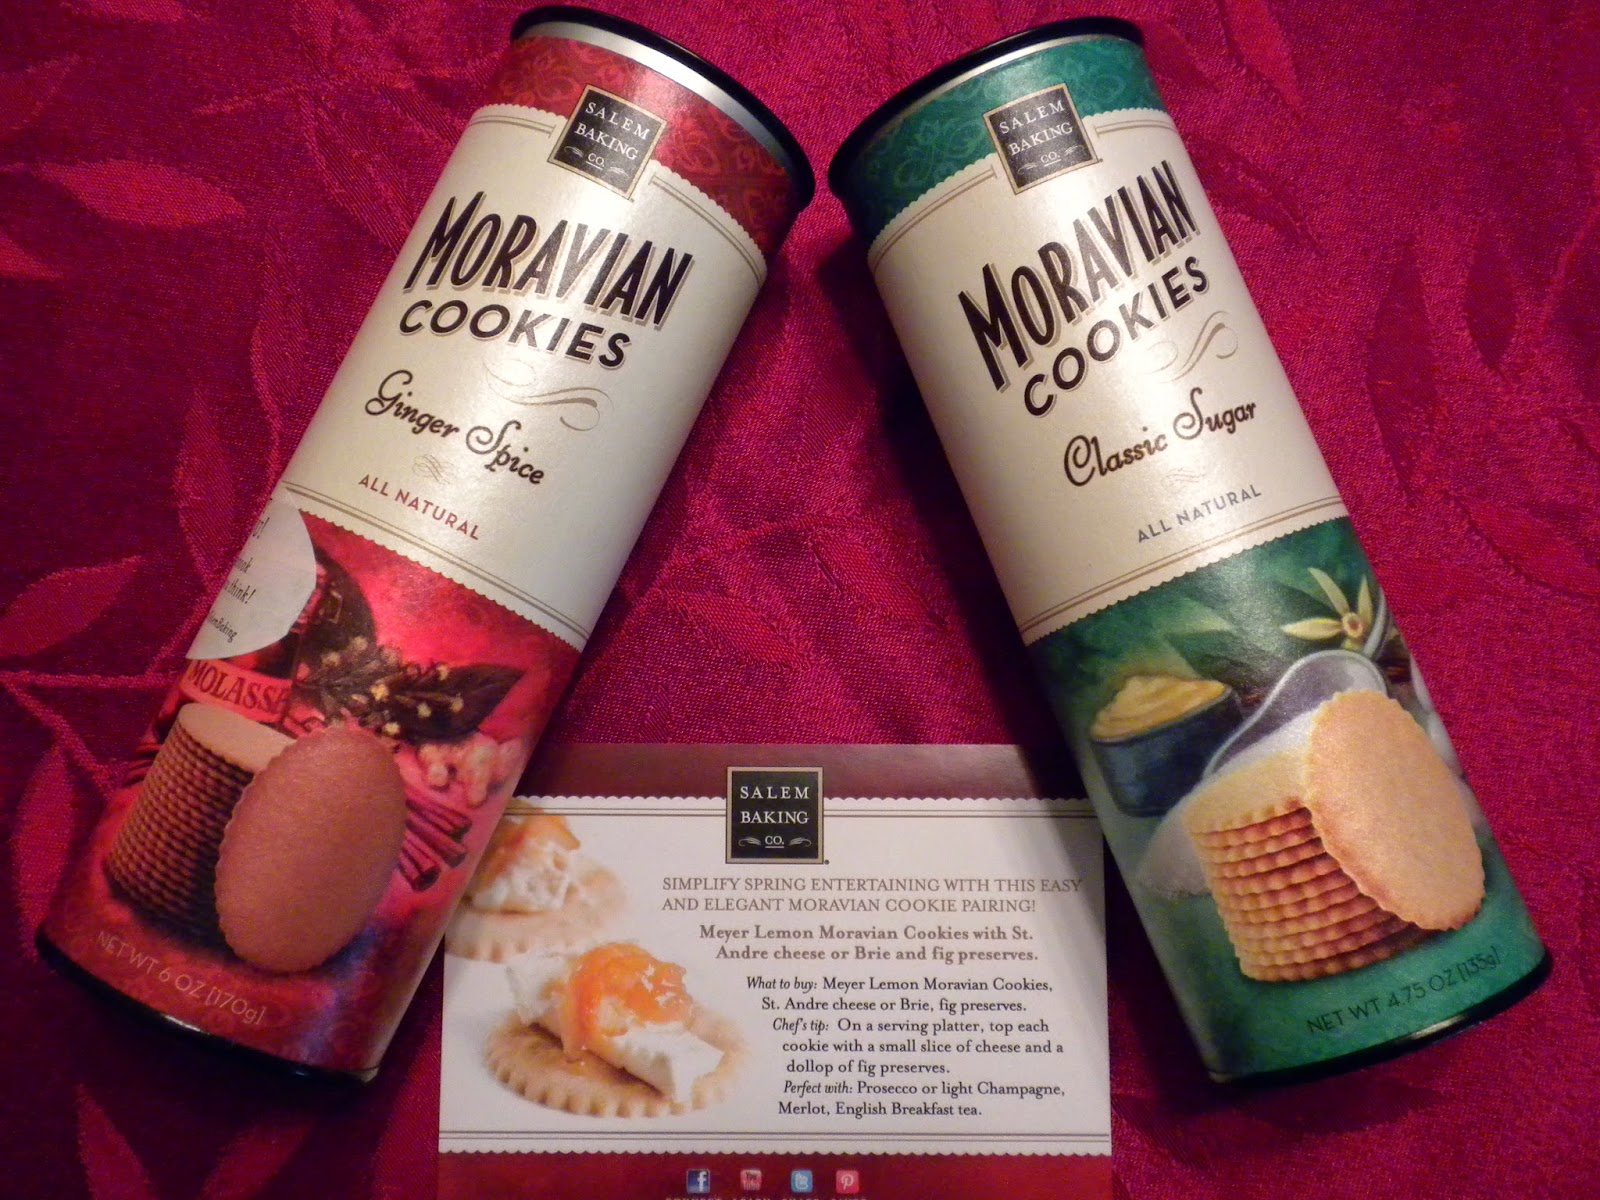 Moravian Cookies by Salem Baking Company